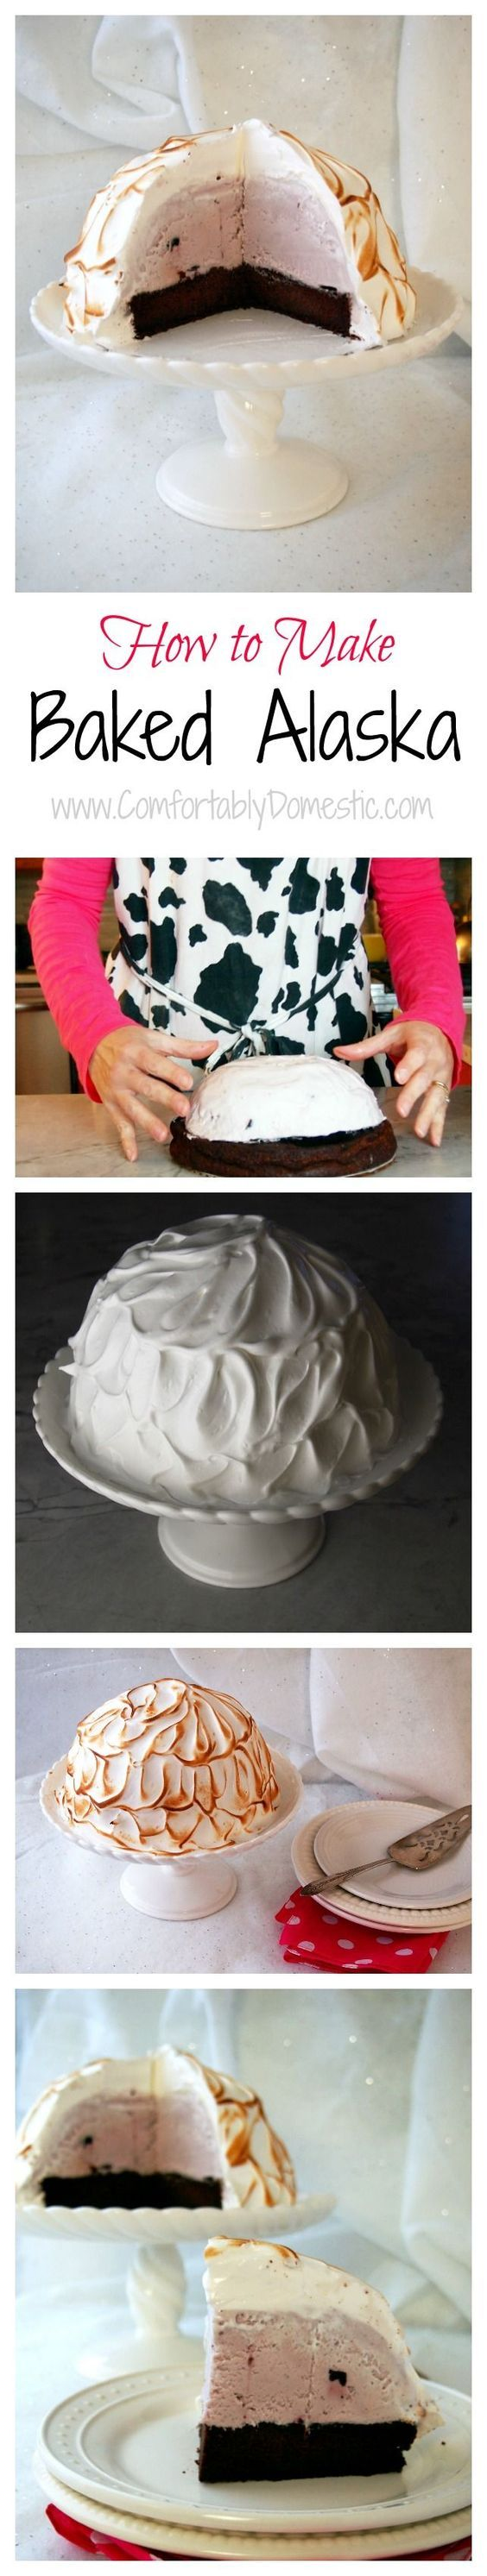 Baked-Alaska is a fun and whimical ice cream cake dessert that's as fun to make as it is to eat. Easy How To instructions via @comfortdomestic www.comfortablydomestic.com